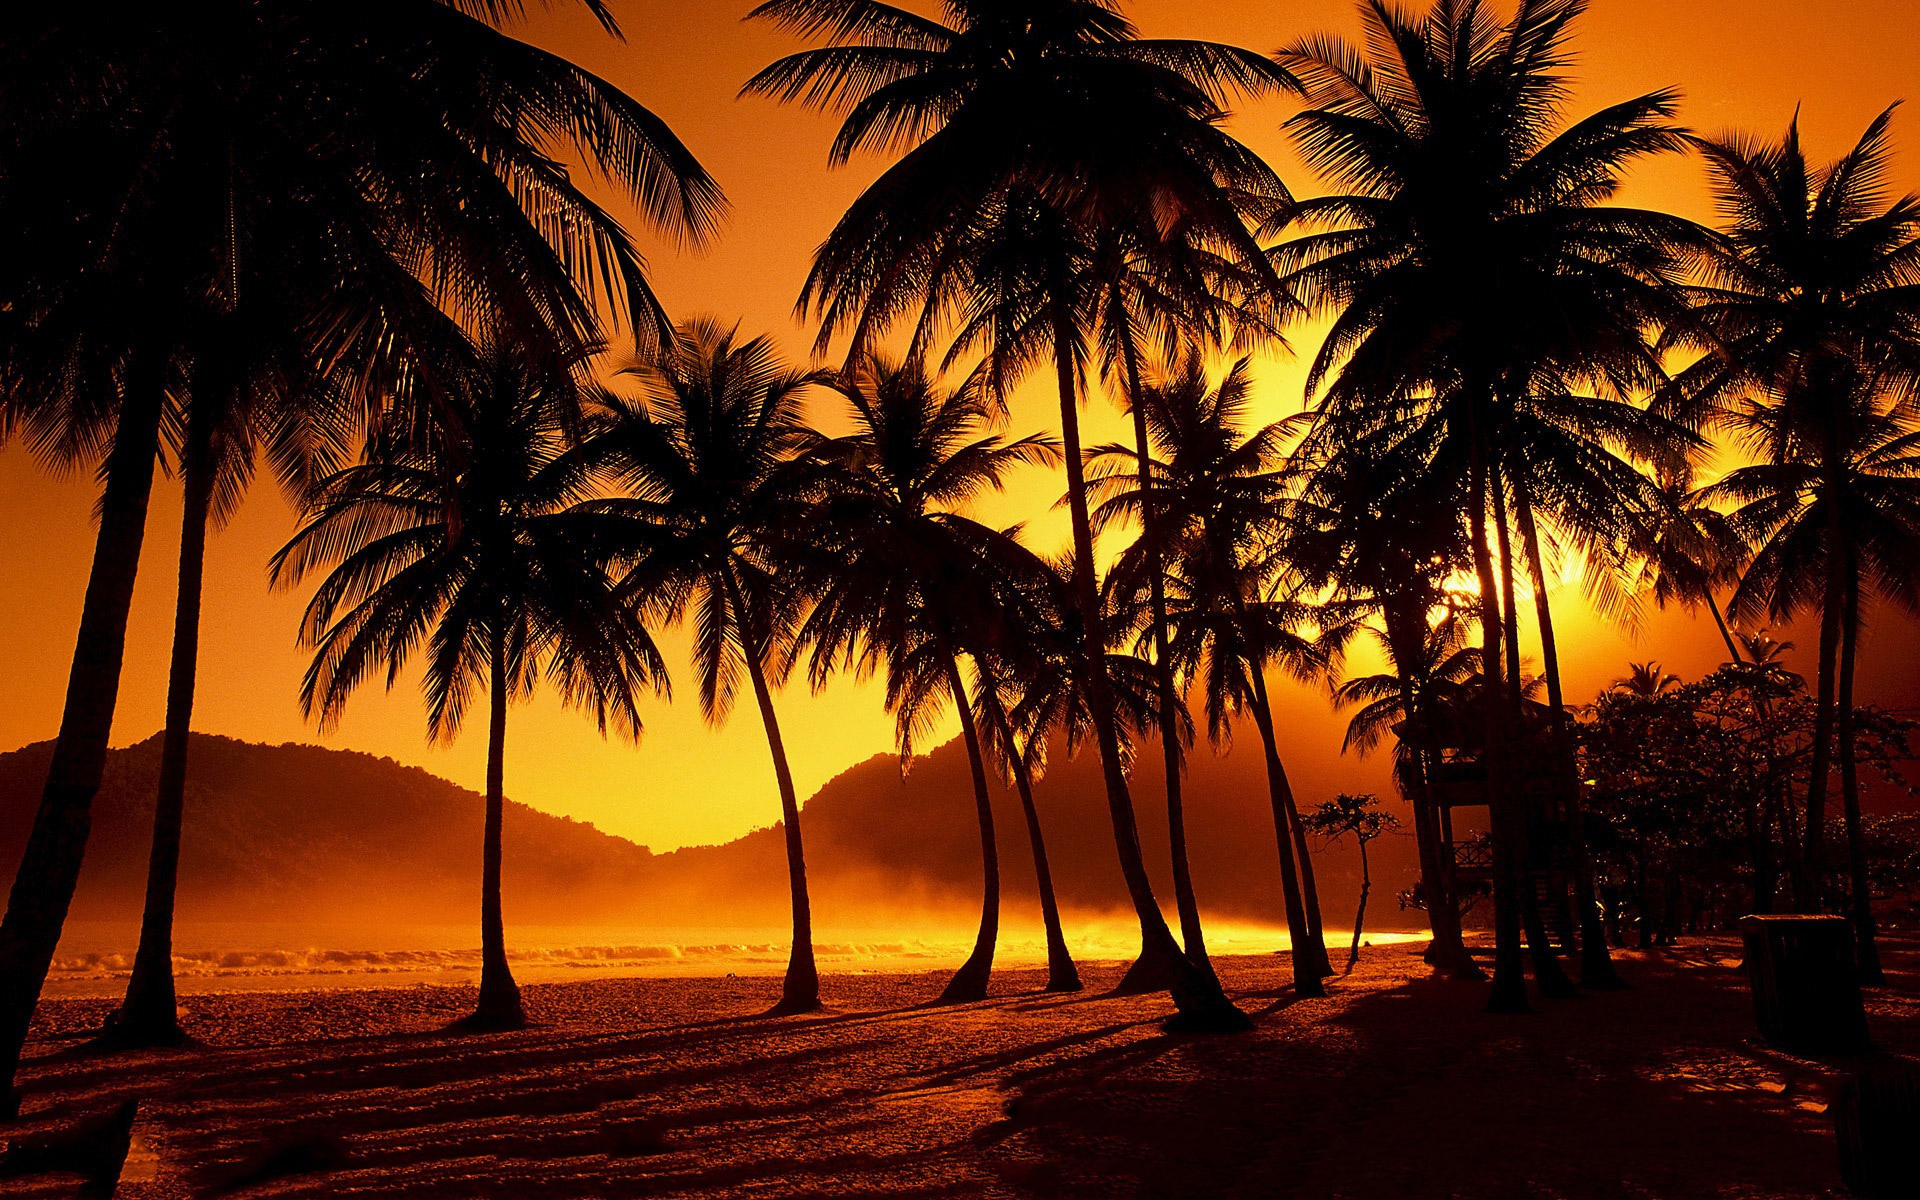 Sunset Palms Beach Wallpaper 1920x1200 32114